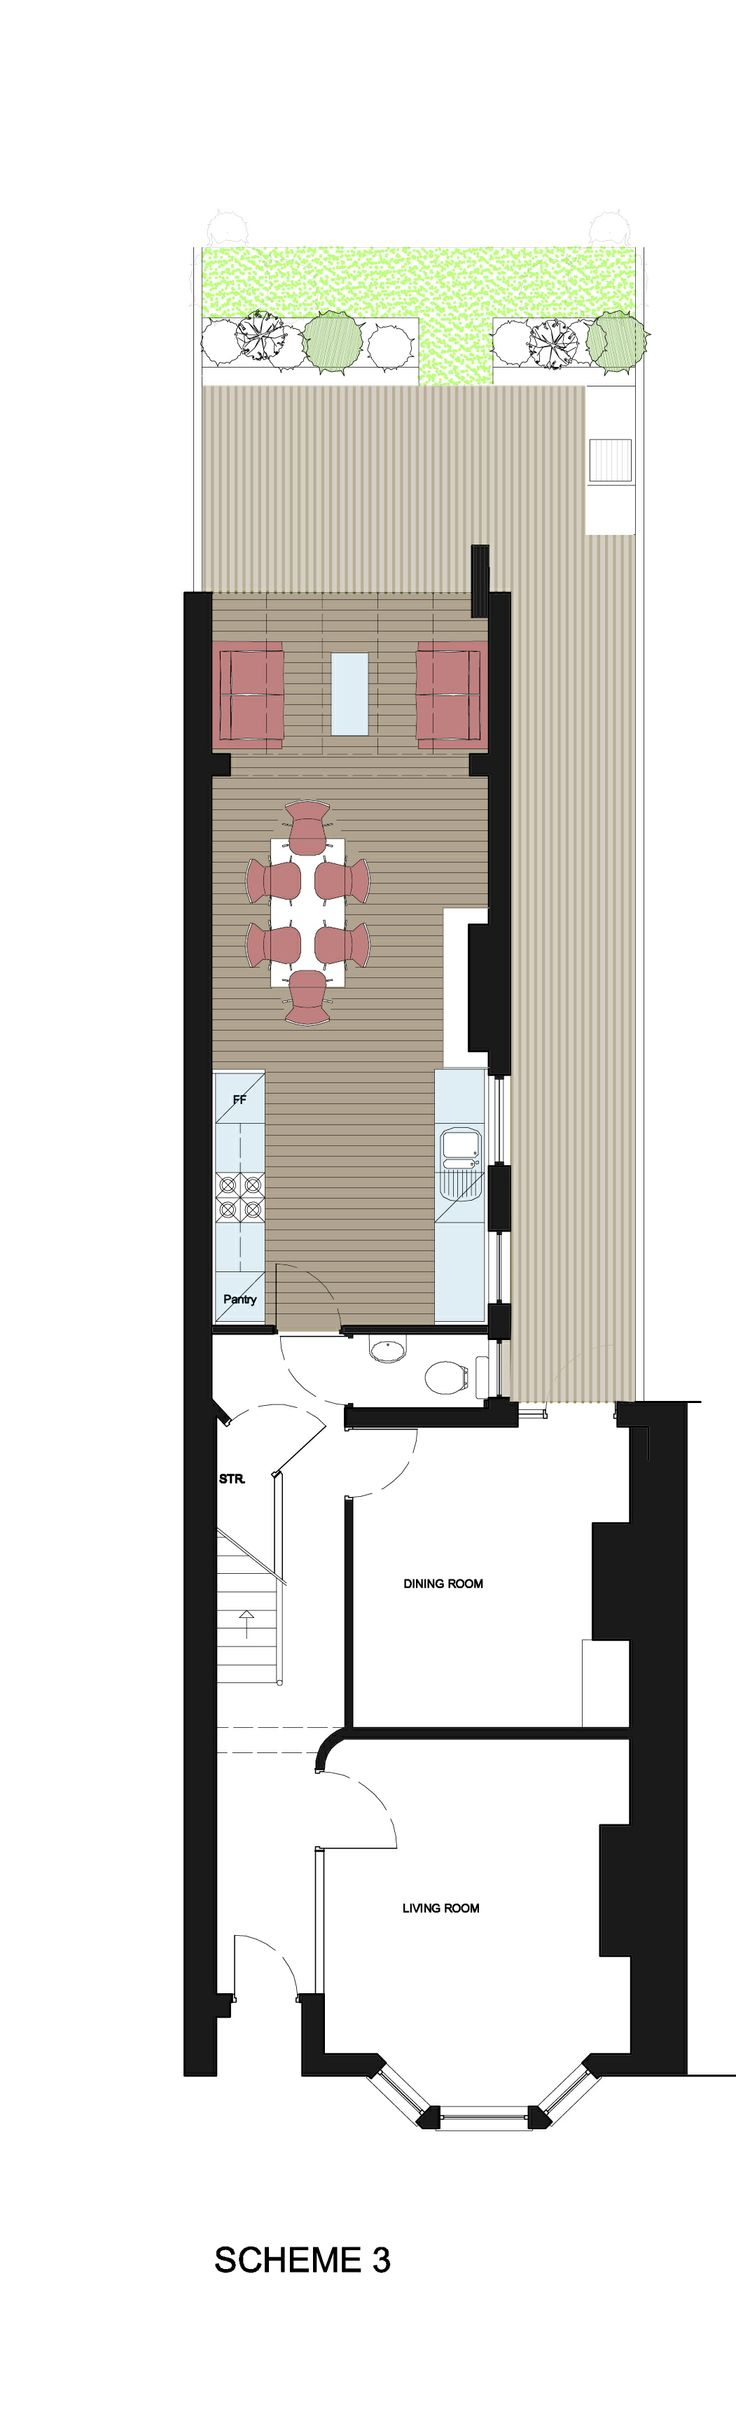 Plan of the rear extension and renovations.